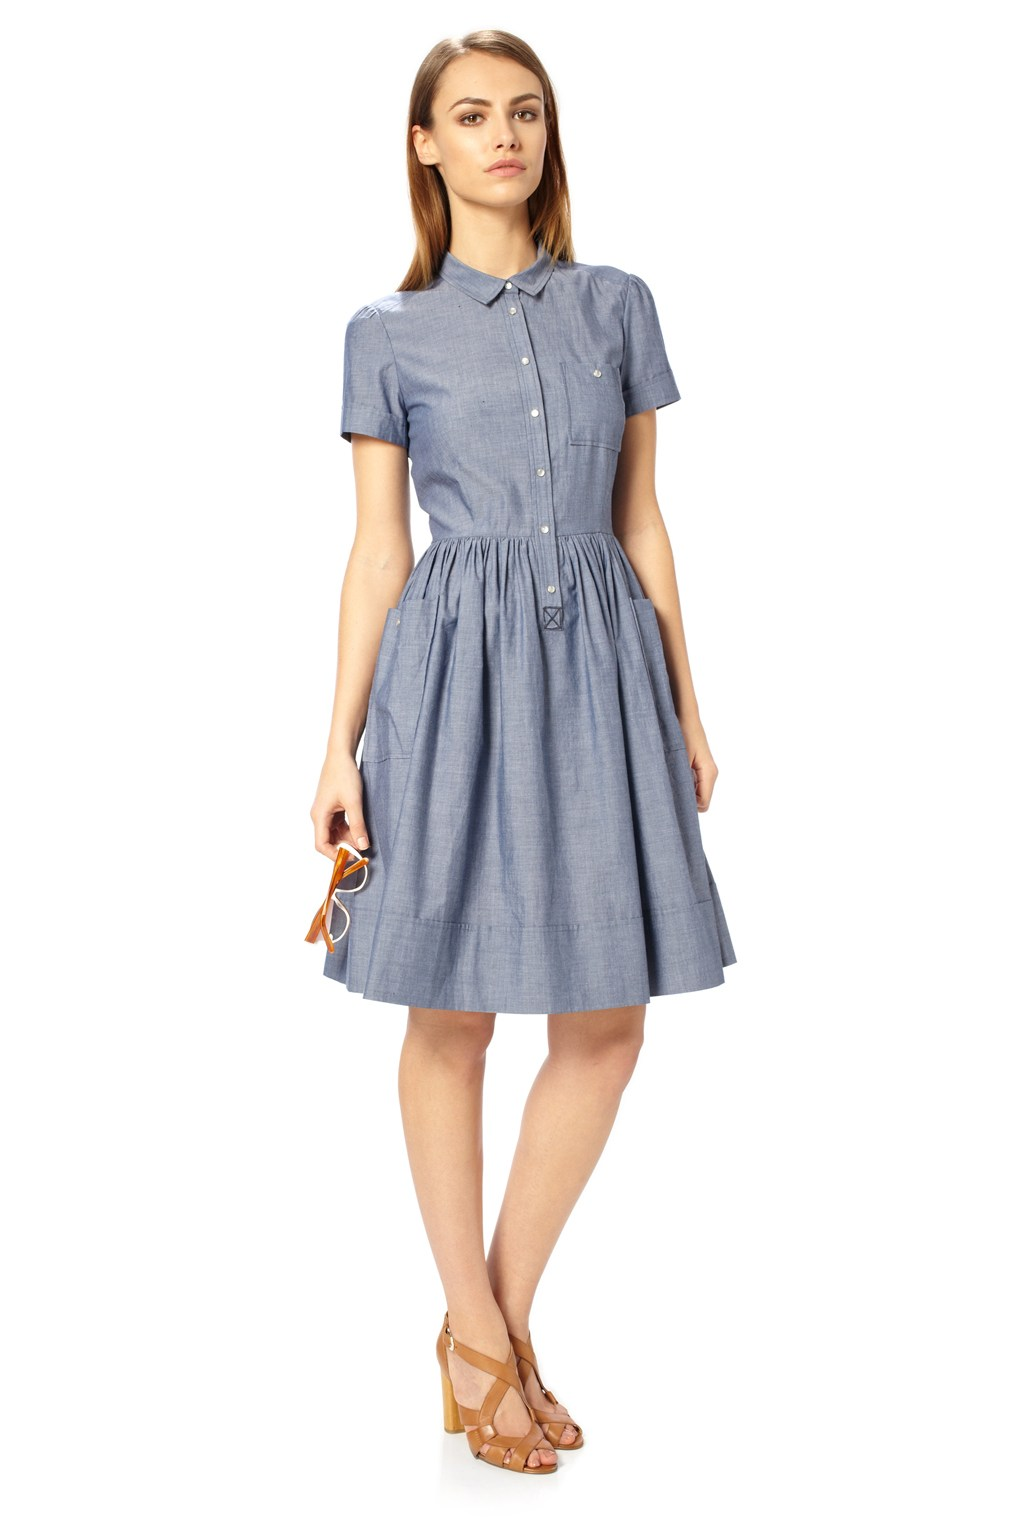 This chambray dress is a customer favorite with a comfortable full-length fit, easy-wear design and handy side-seam pockets. It's made to fit your life perfectly. Chambray dress in % cotton fabric.